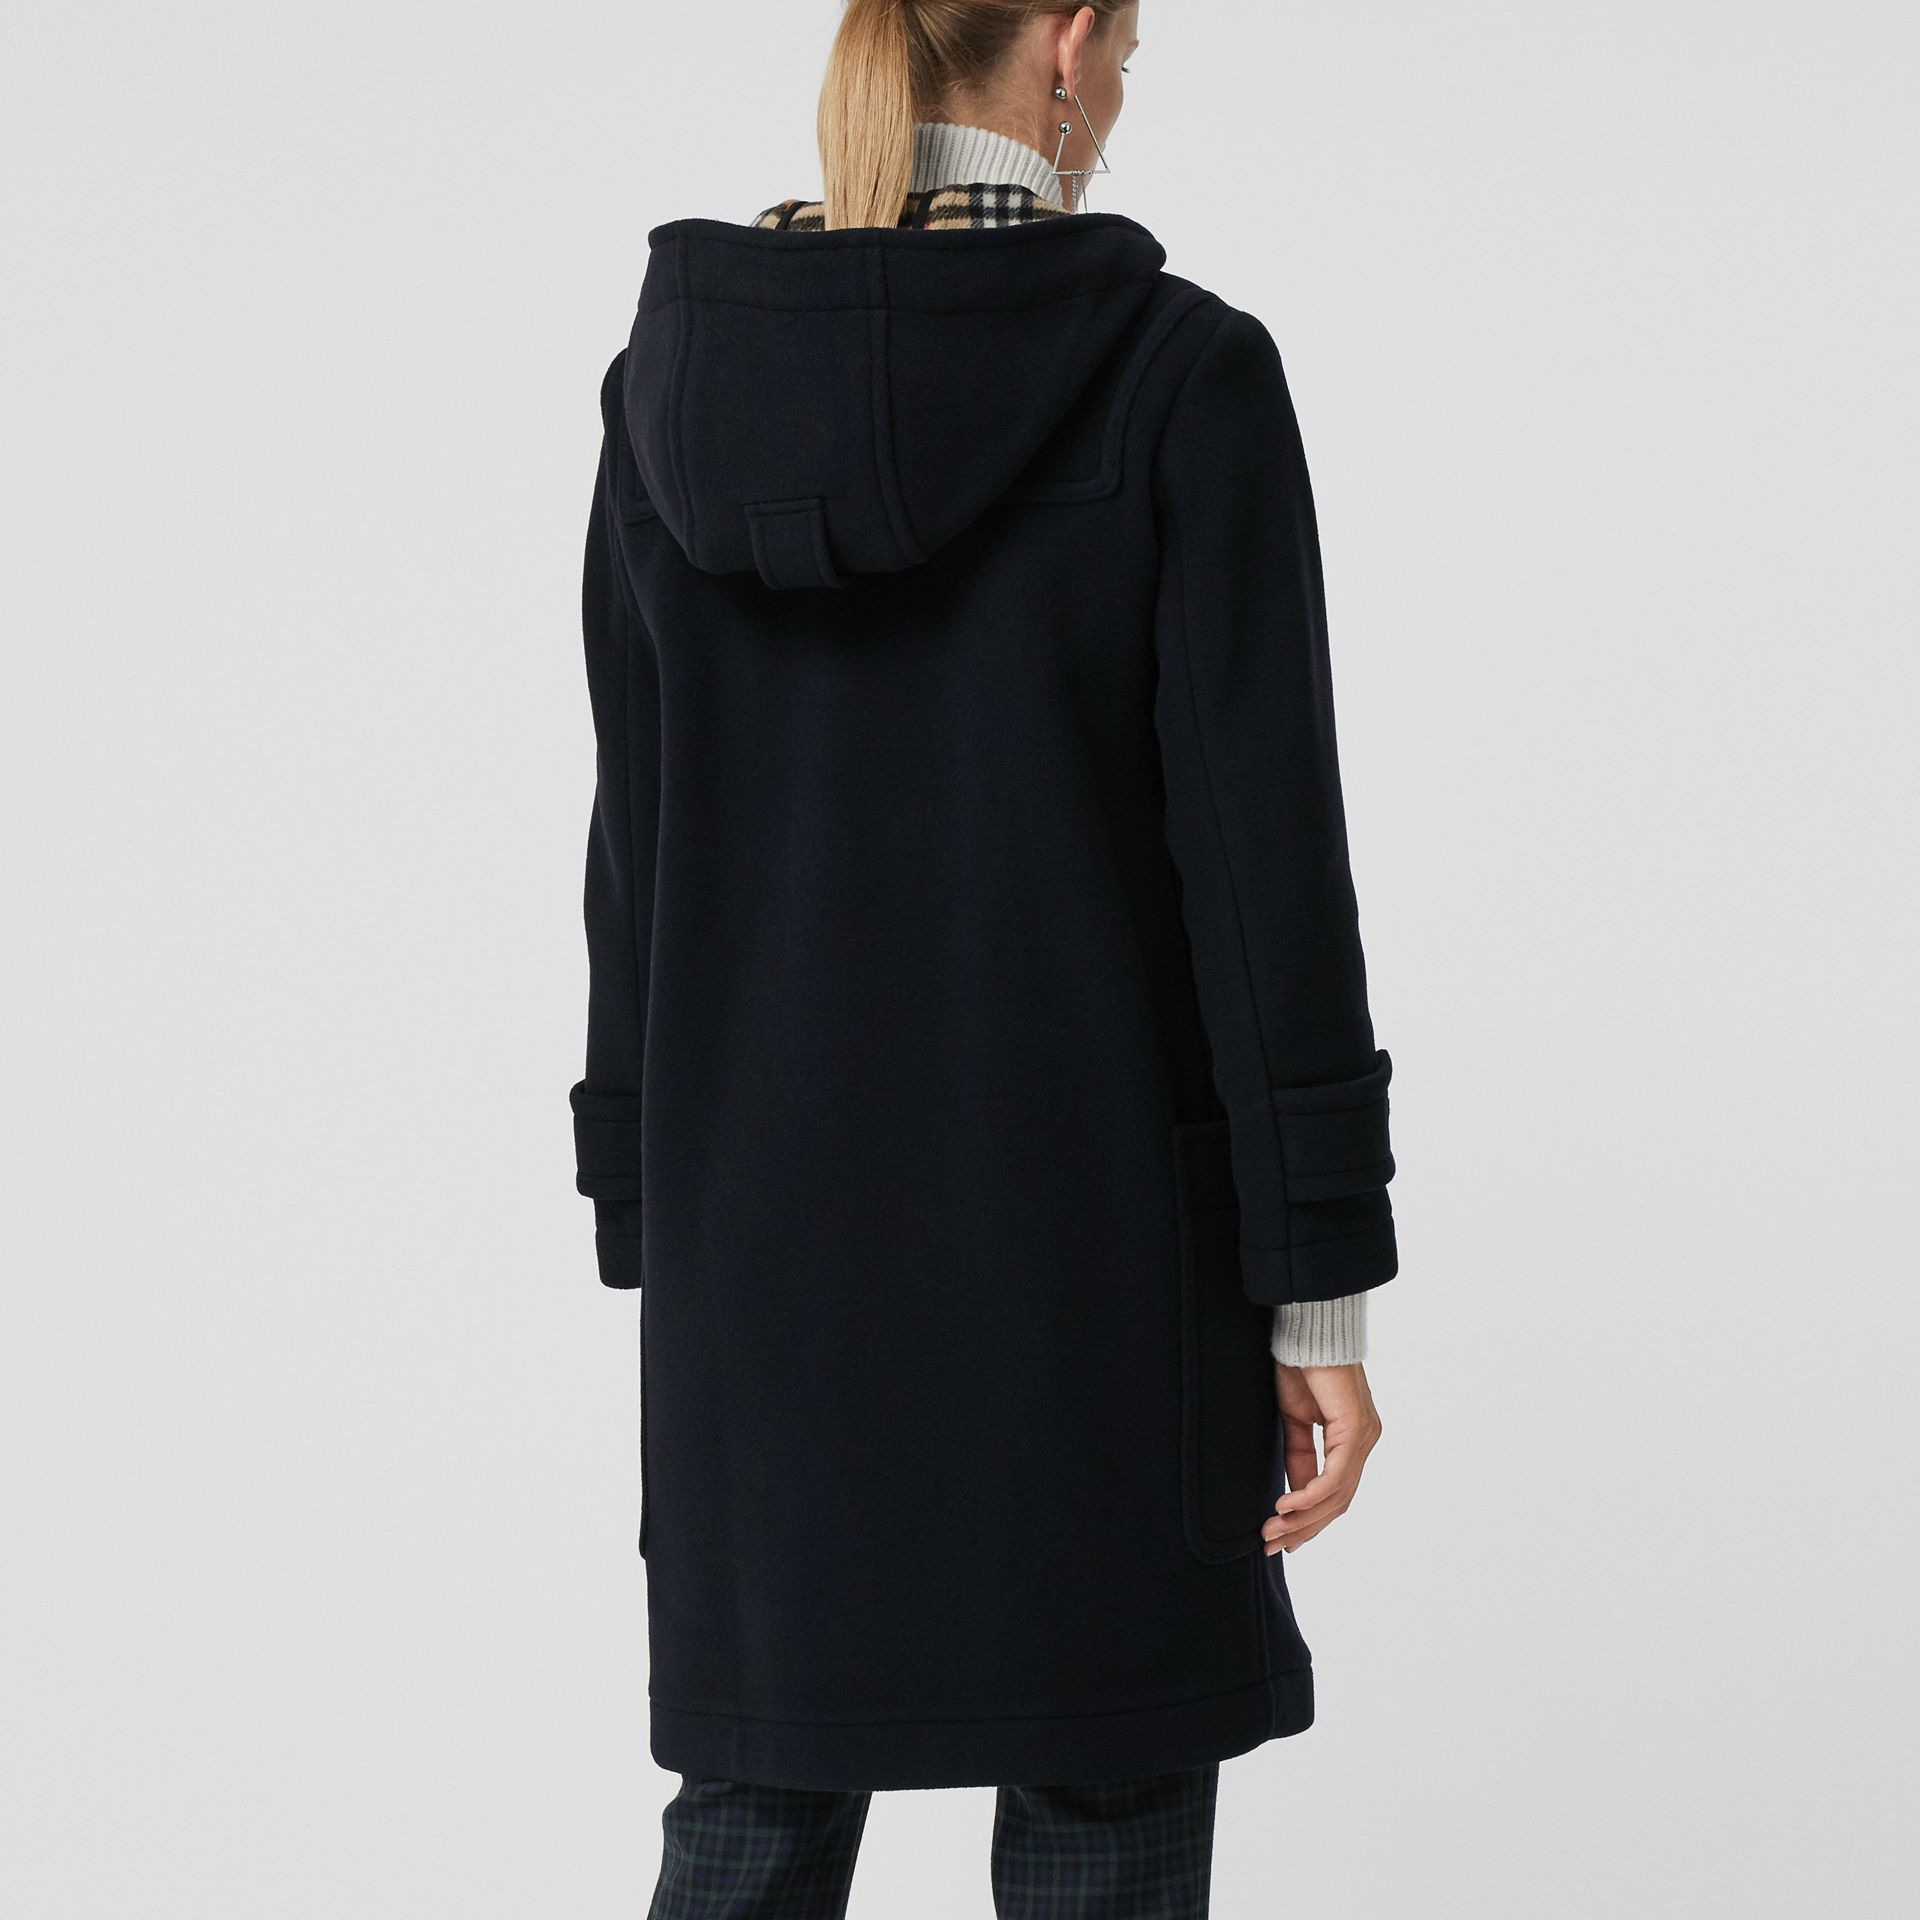 Wool Blend Oversized Duffle Coat in Navy - Women | Burberry United States - gallery image 2